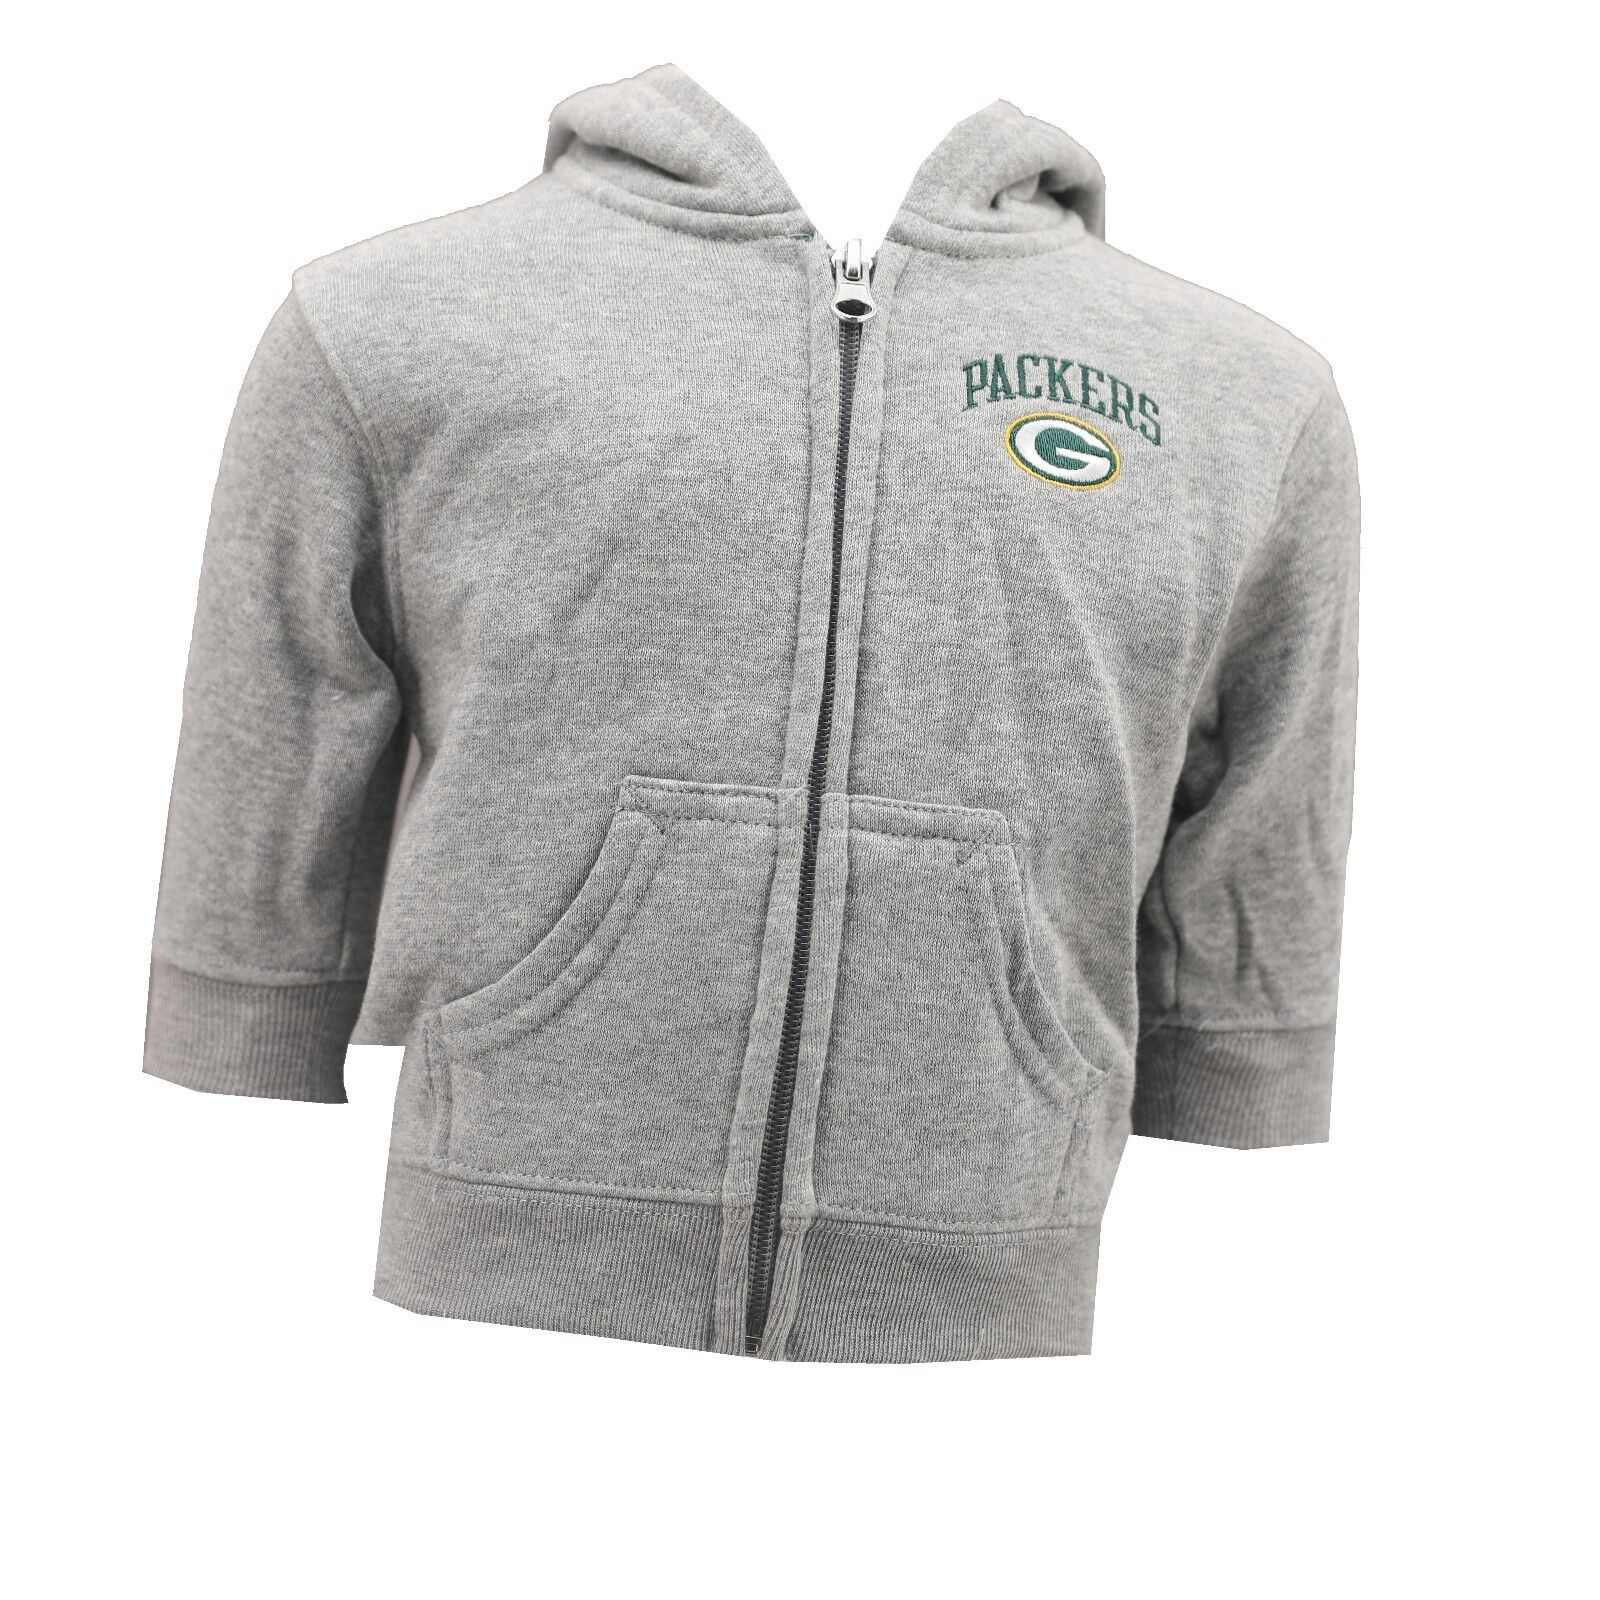 5e72c27a1 Details about Green Bay Packers NFL Official Baby Infant Zip Up Hooded  Sweatshirt New Tags